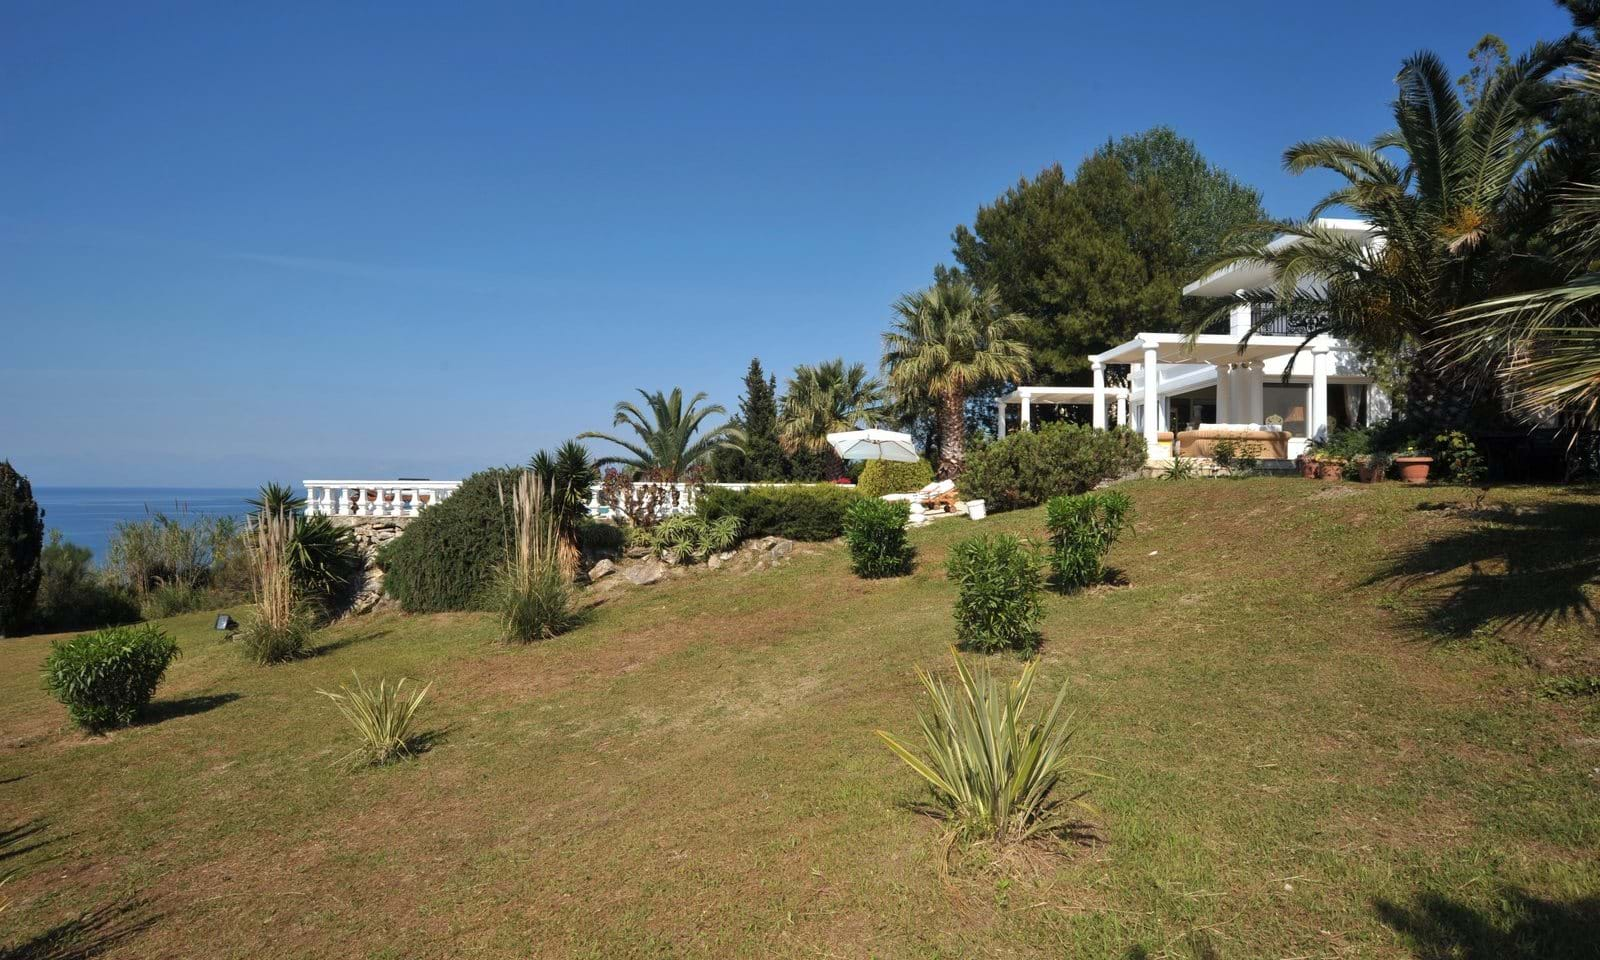 Seaside villas for sale in Corfu